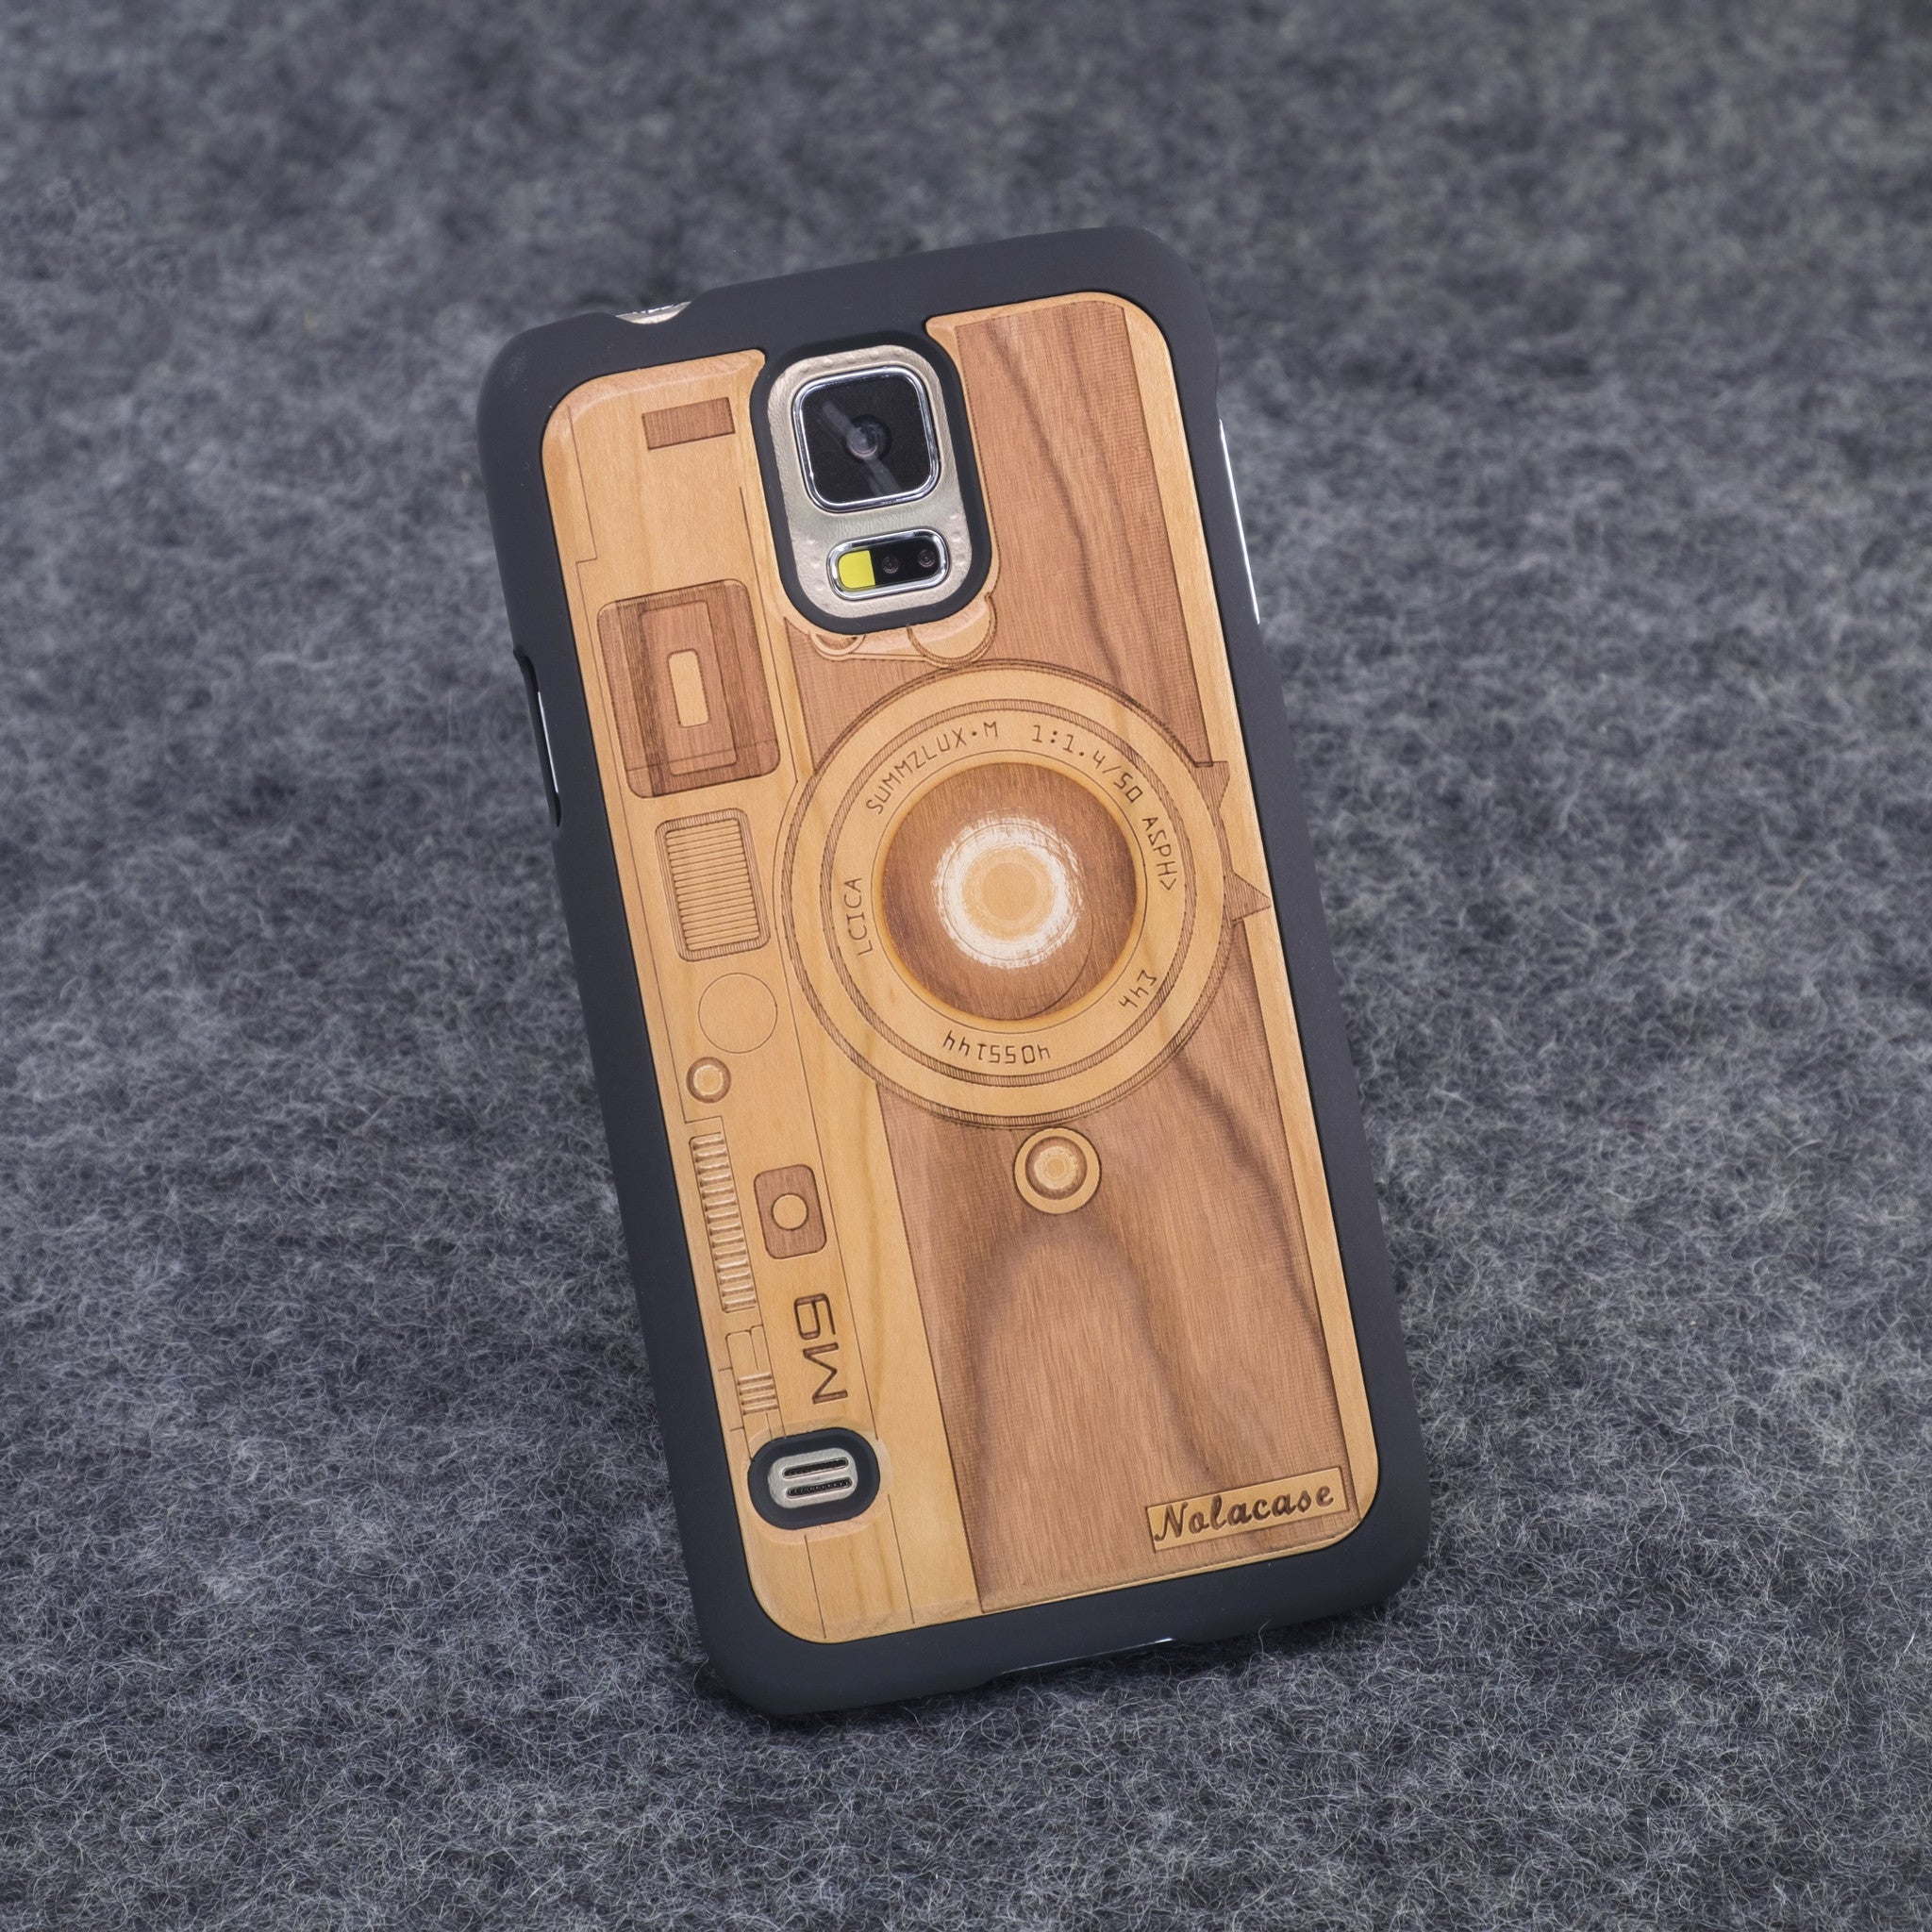 Samsung S5 M9 Camera Slim Wood Case - NOLACASE